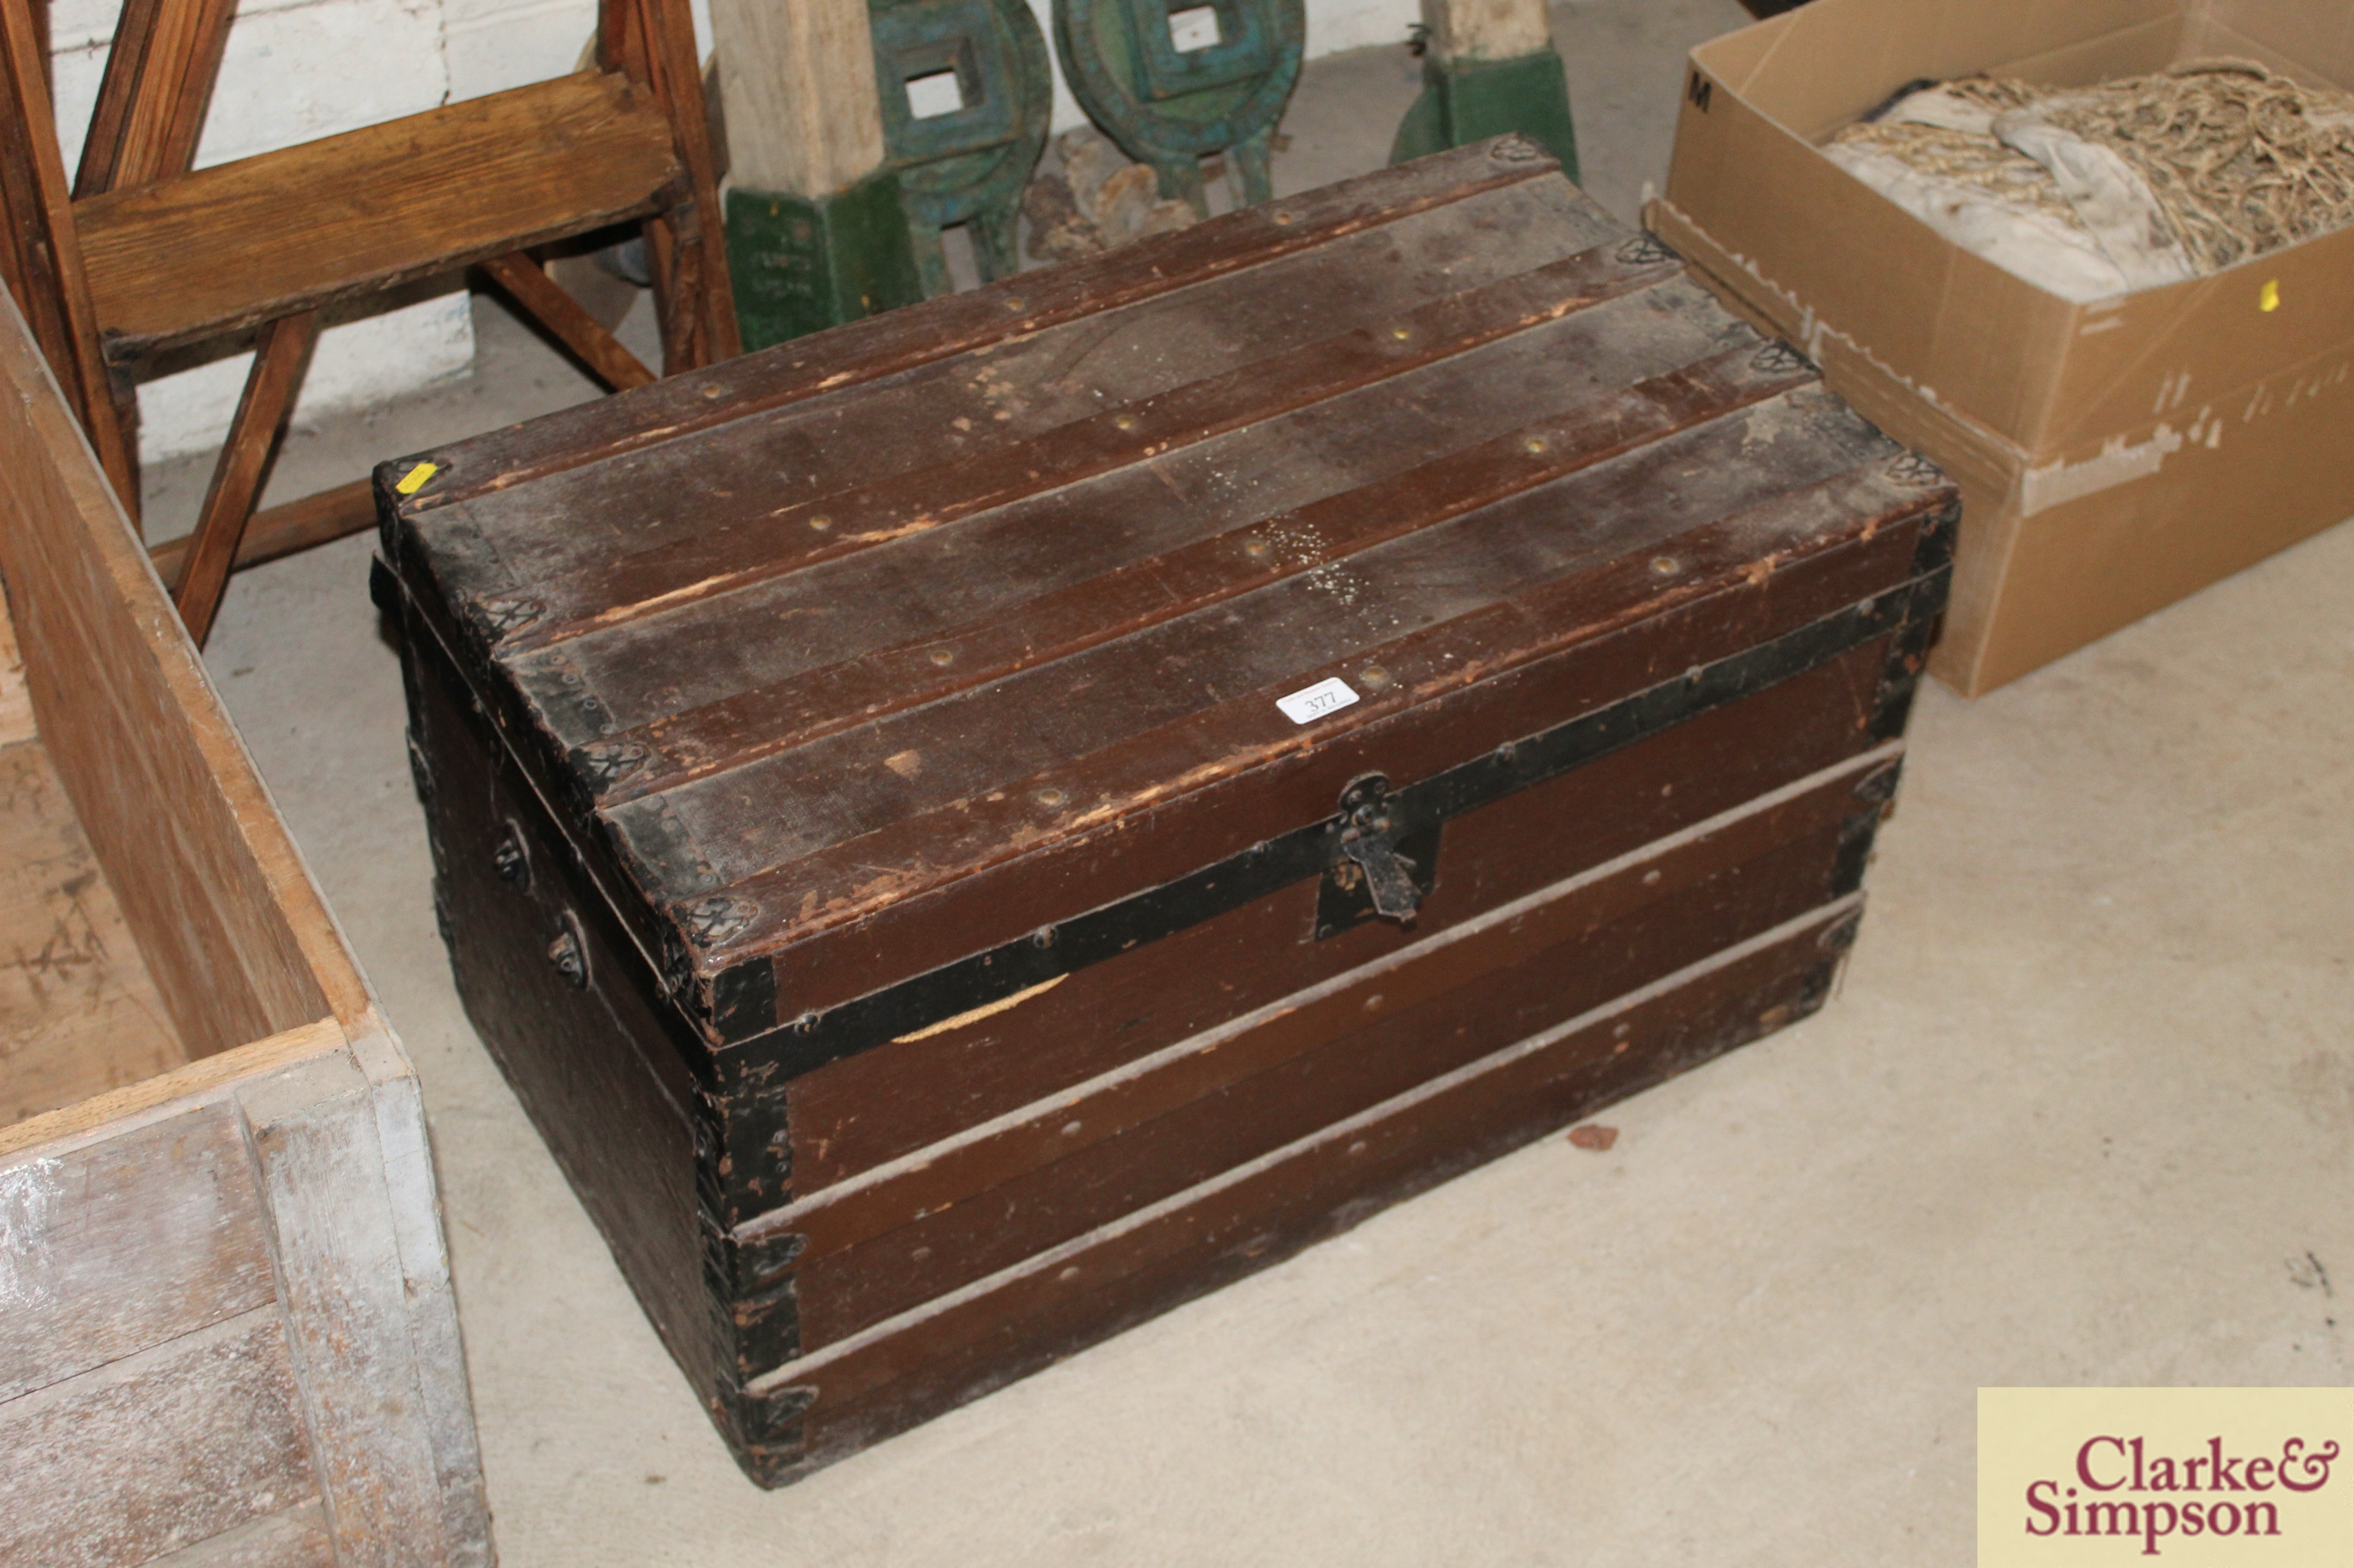 A vintage wooden trunk with metal mounts and carry